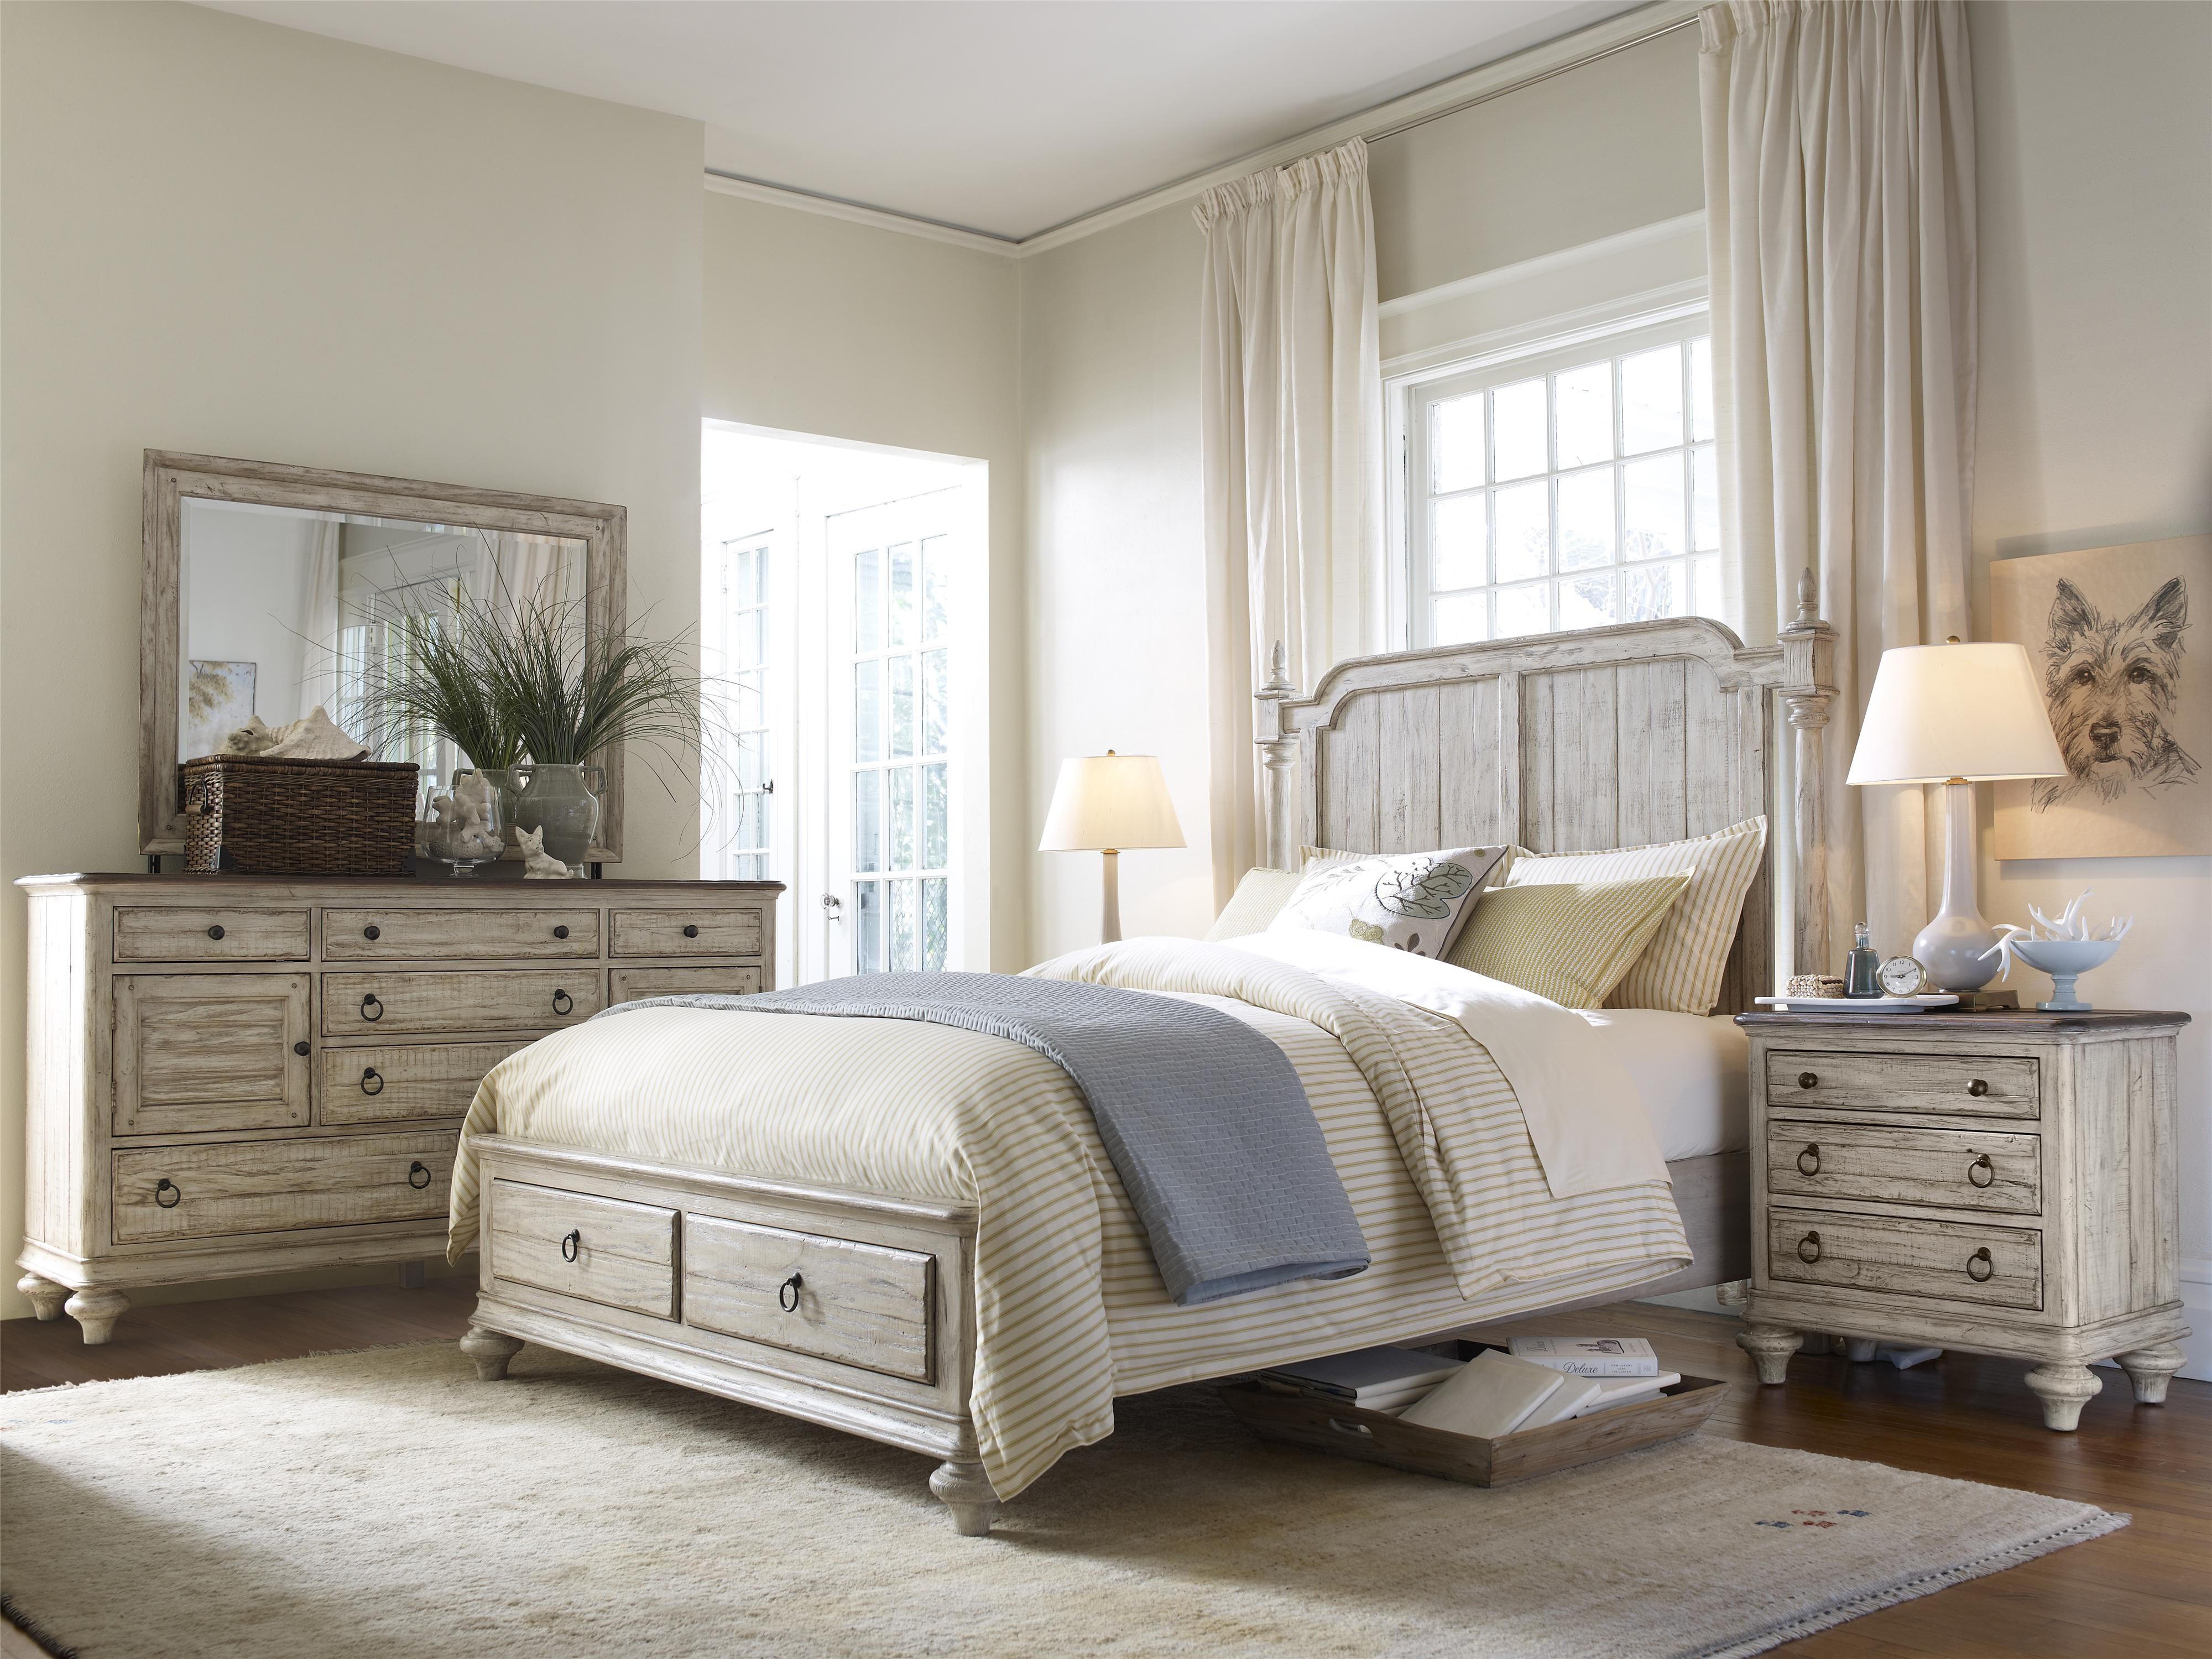 weatherford 75 by kincaid furniture adcock furniture kincaid furniture weatherford dealer. Black Bedroom Furniture Sets. Home Design Ideas